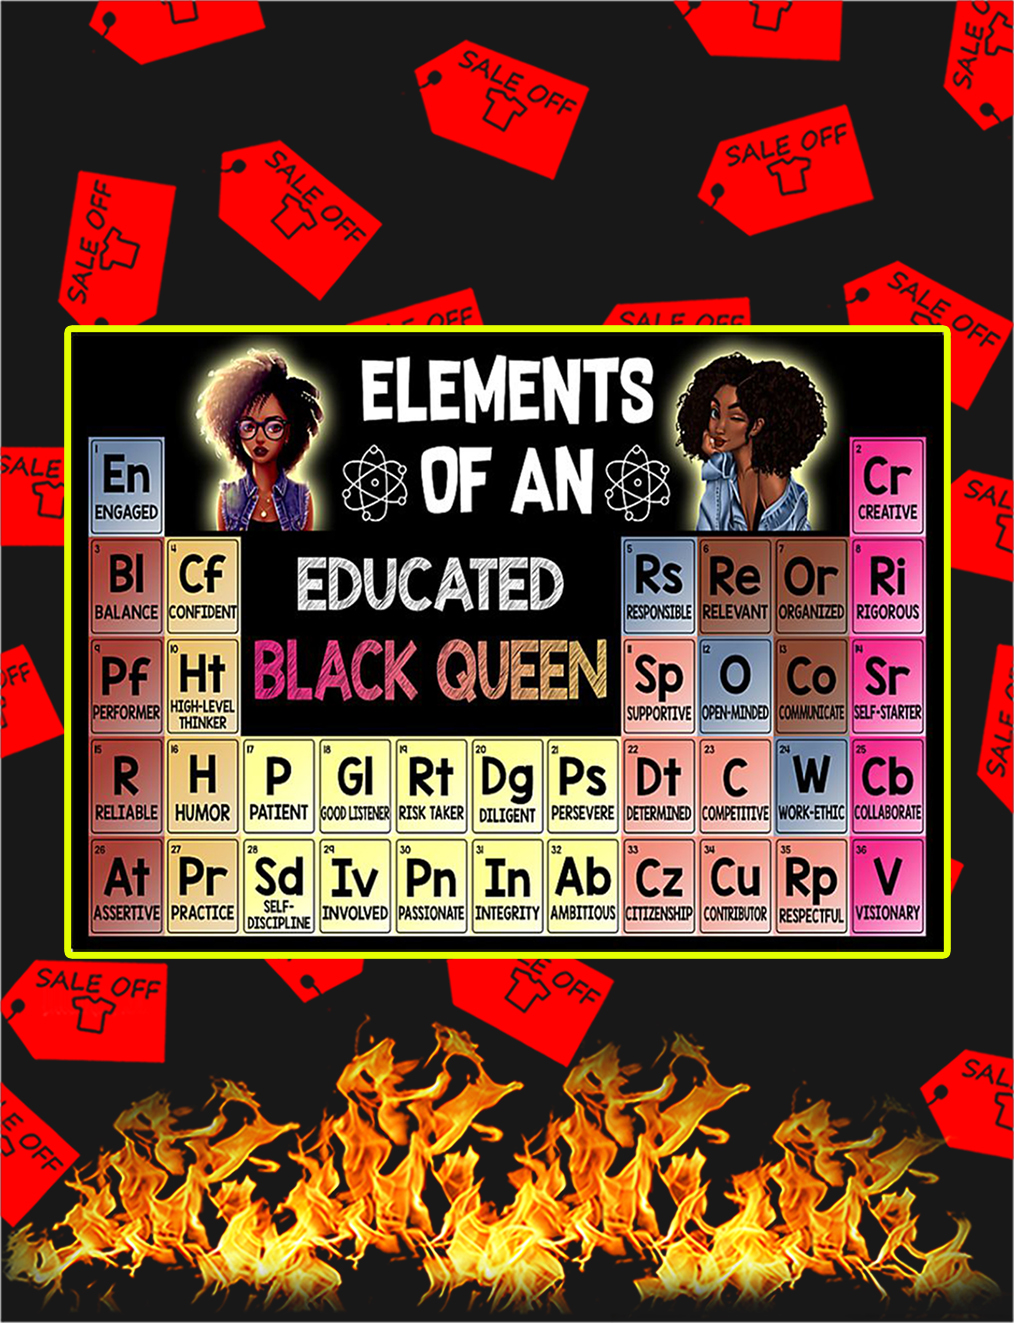 Elements Of An Educated Black Queen Poster - A4